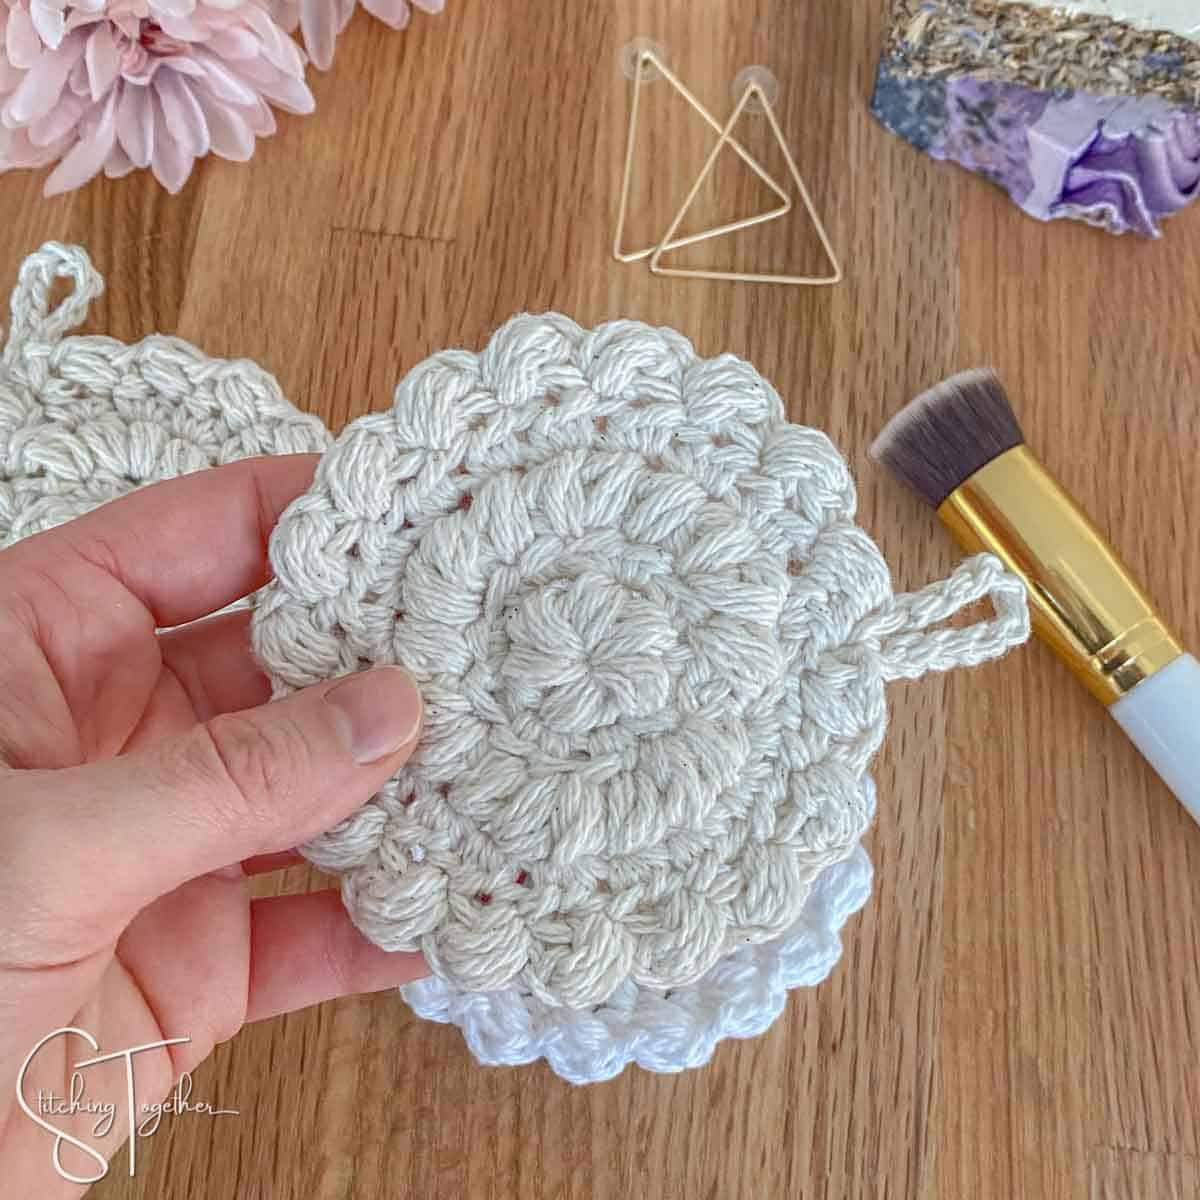 a hand holding a crochet cotton face pad with accessories in the background